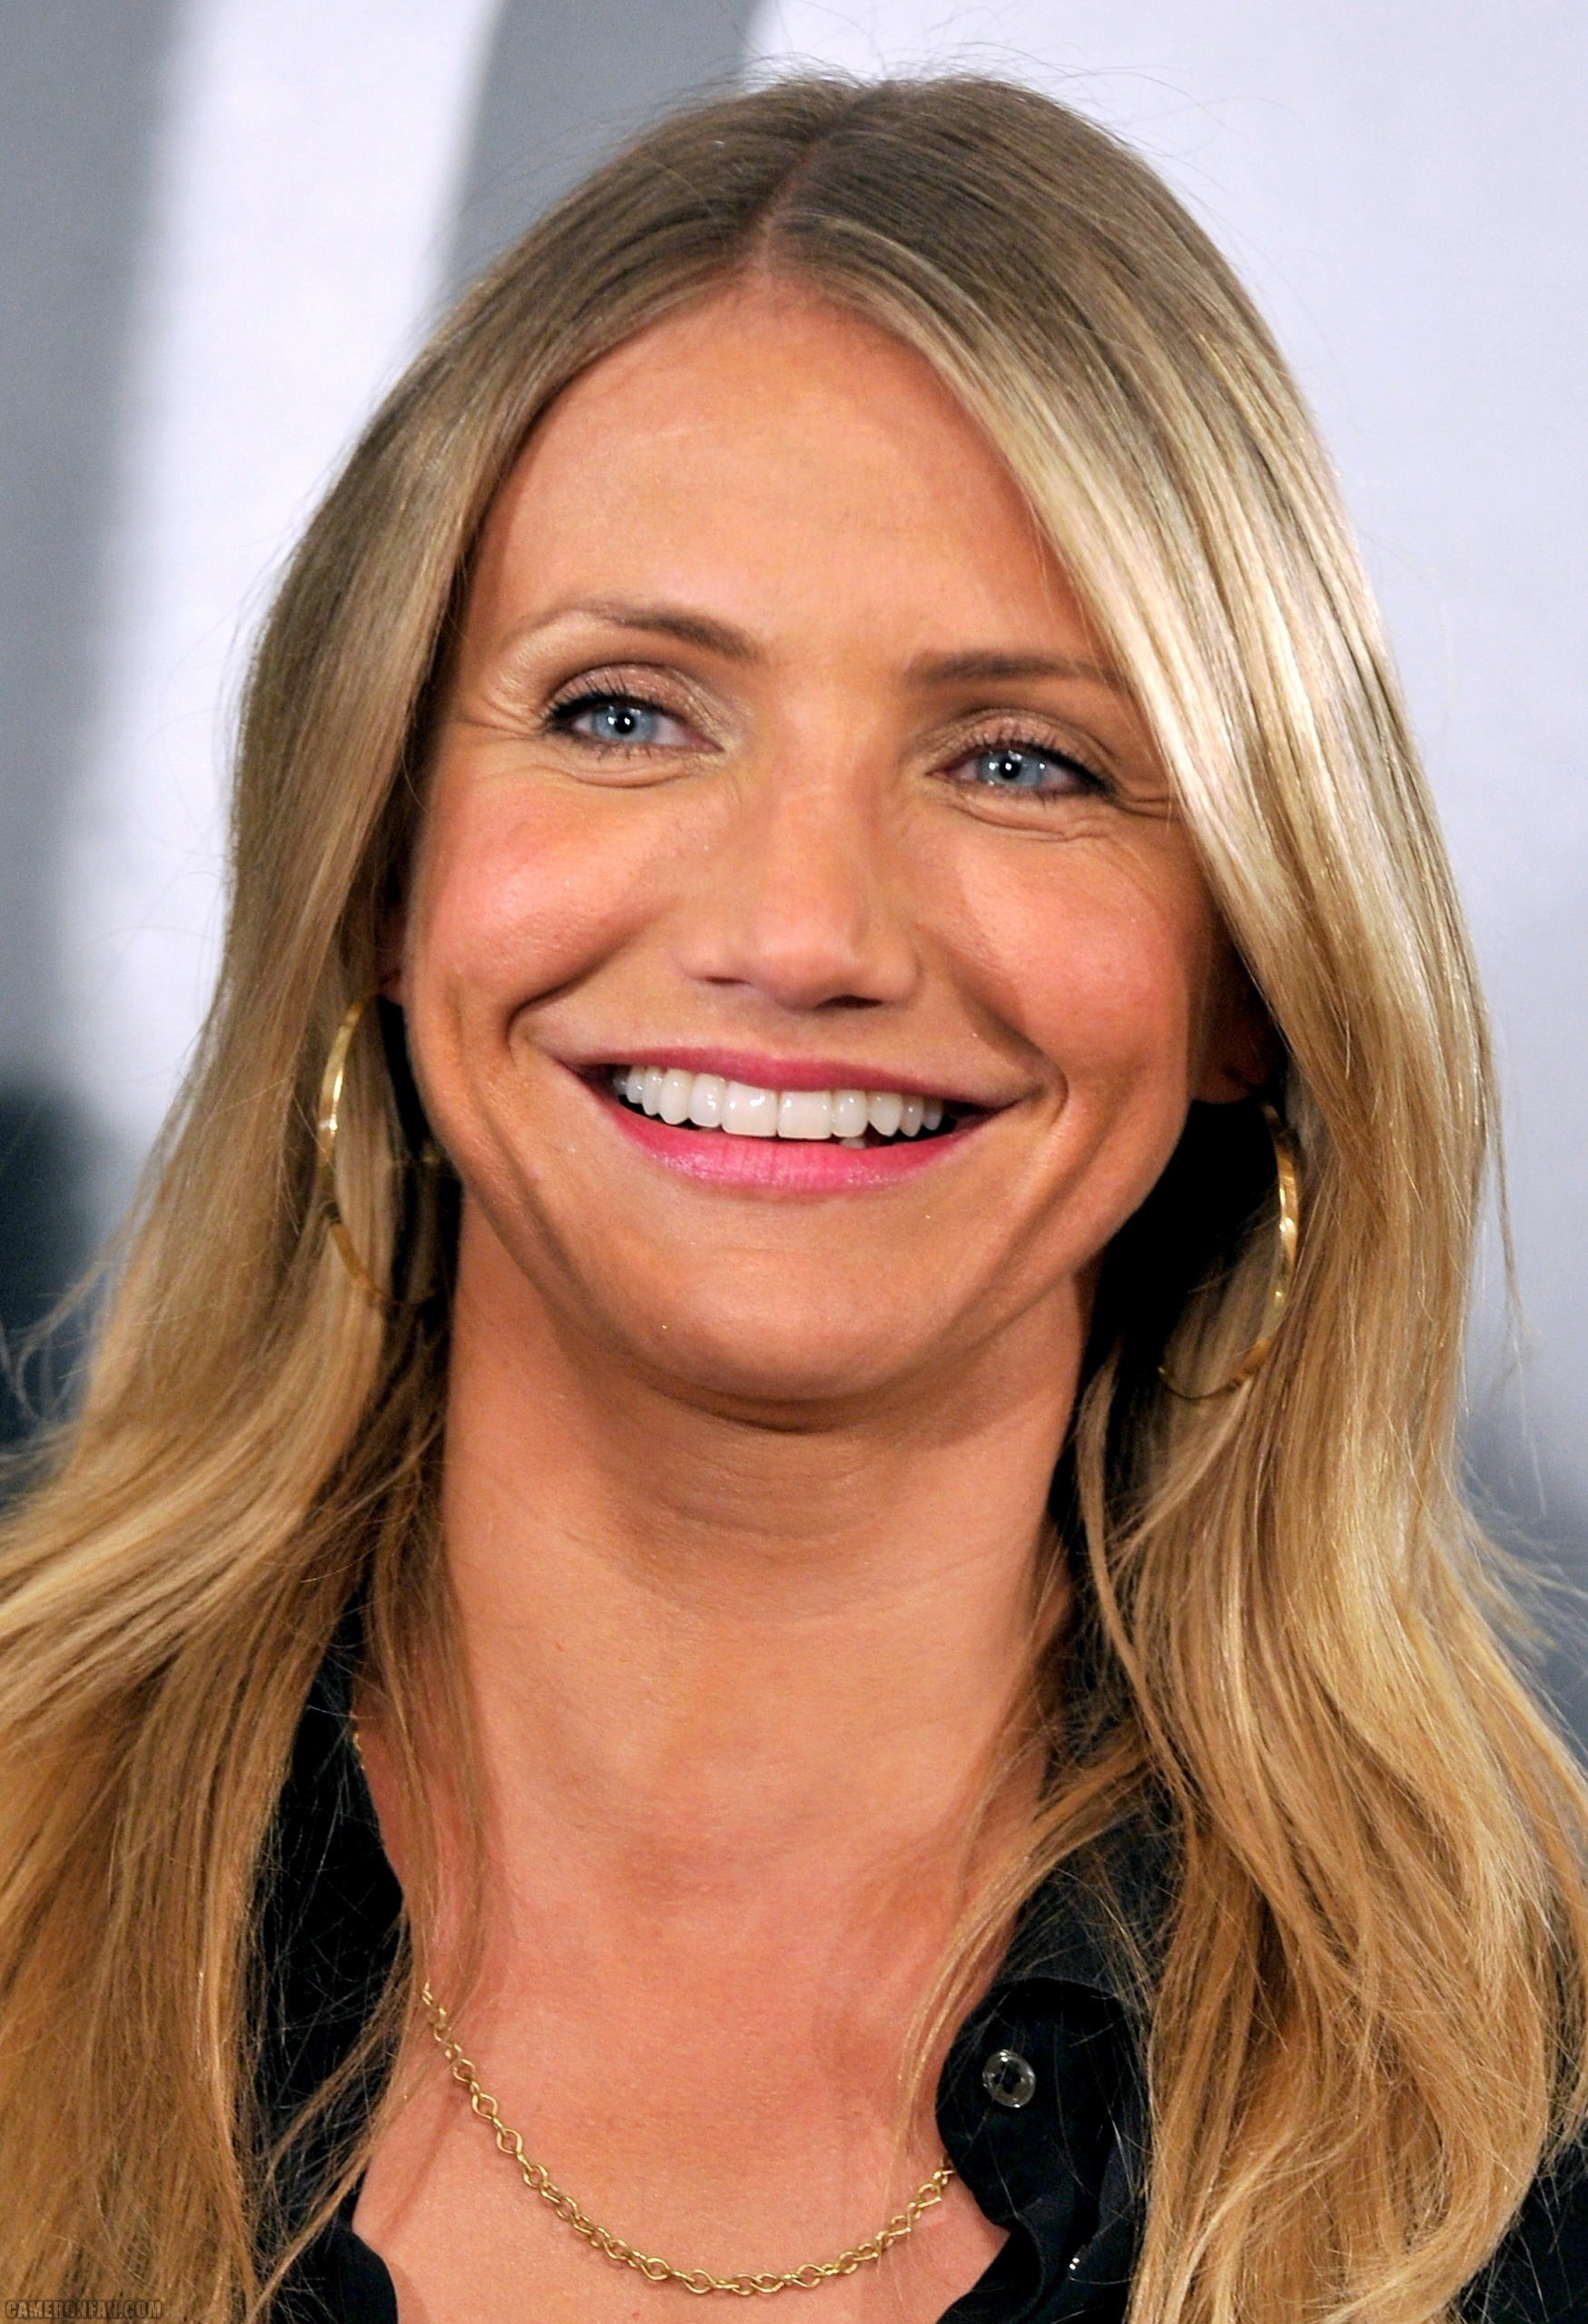 Cameron The Green Hornet Photocall In Madrid Cameron Diaz Photo 17405144 Fanpop